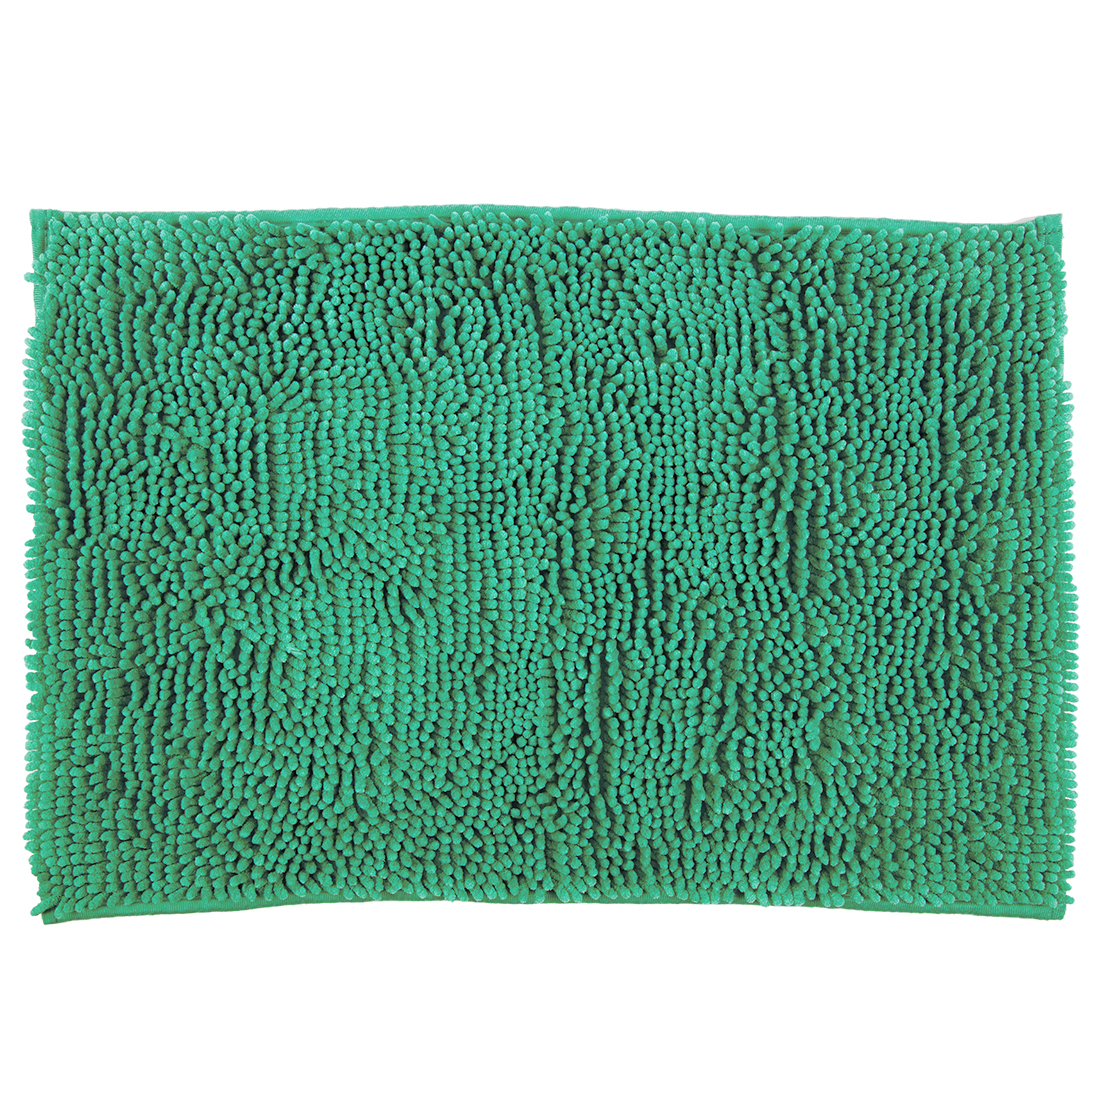 Bath Mat Nora Chenille Olive Chenille Bath Mats in Olive Colour by Living Essence